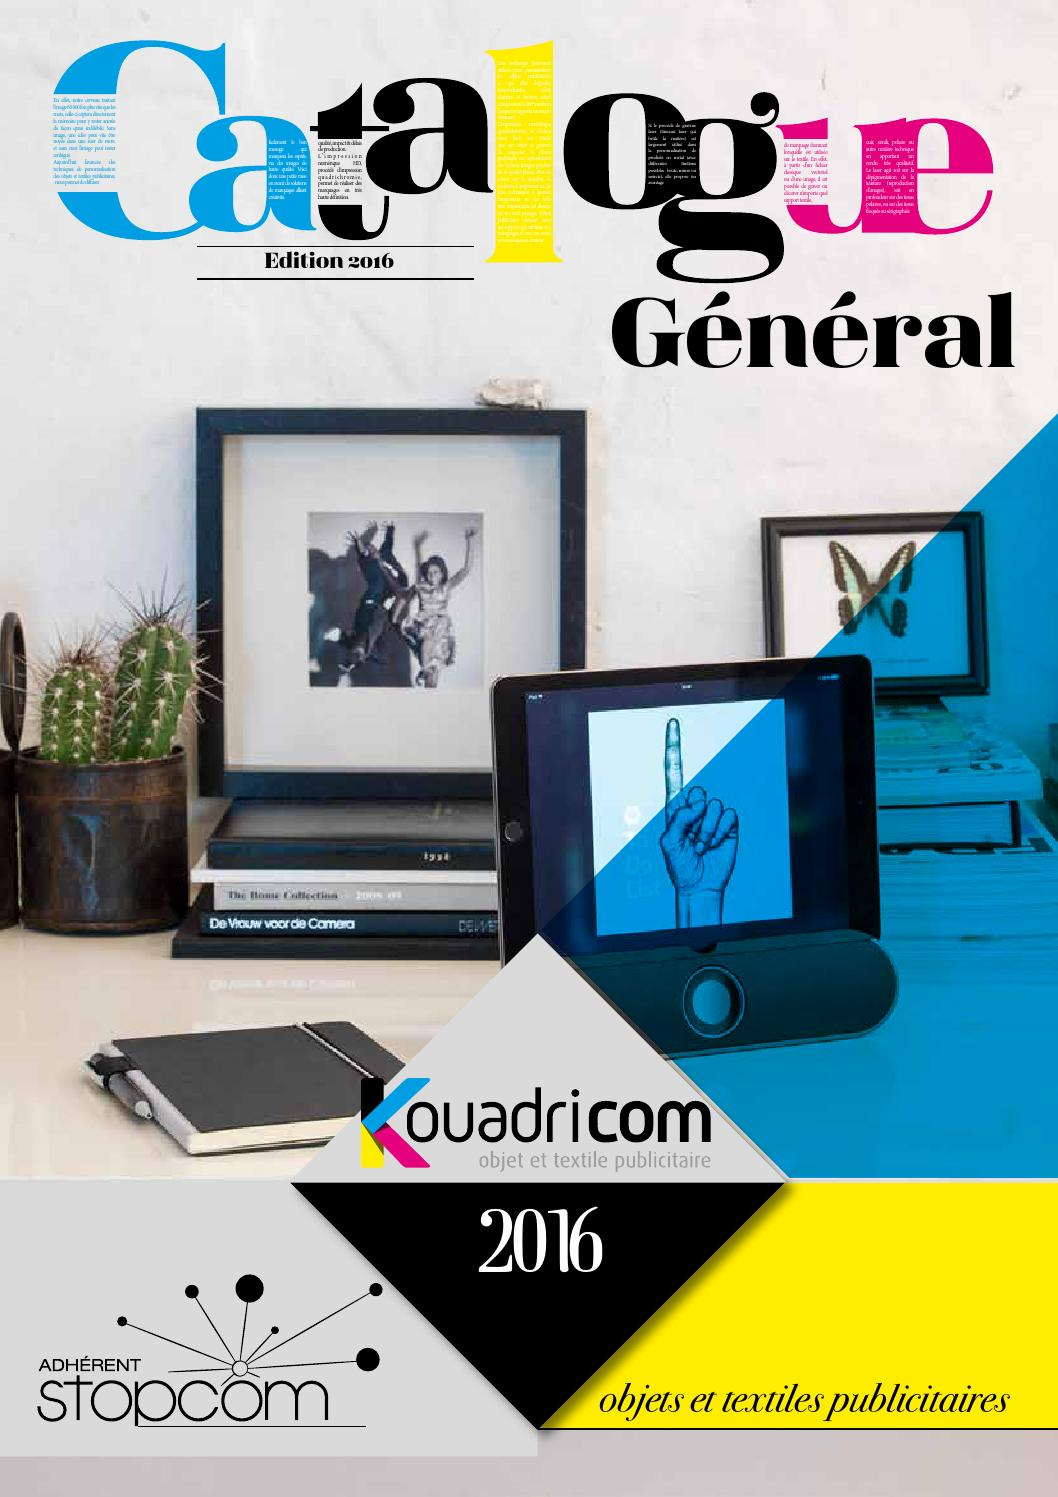 Issuu Objectif Catalogue By Goodies Og7 Kouadricom e2YbED9IWH